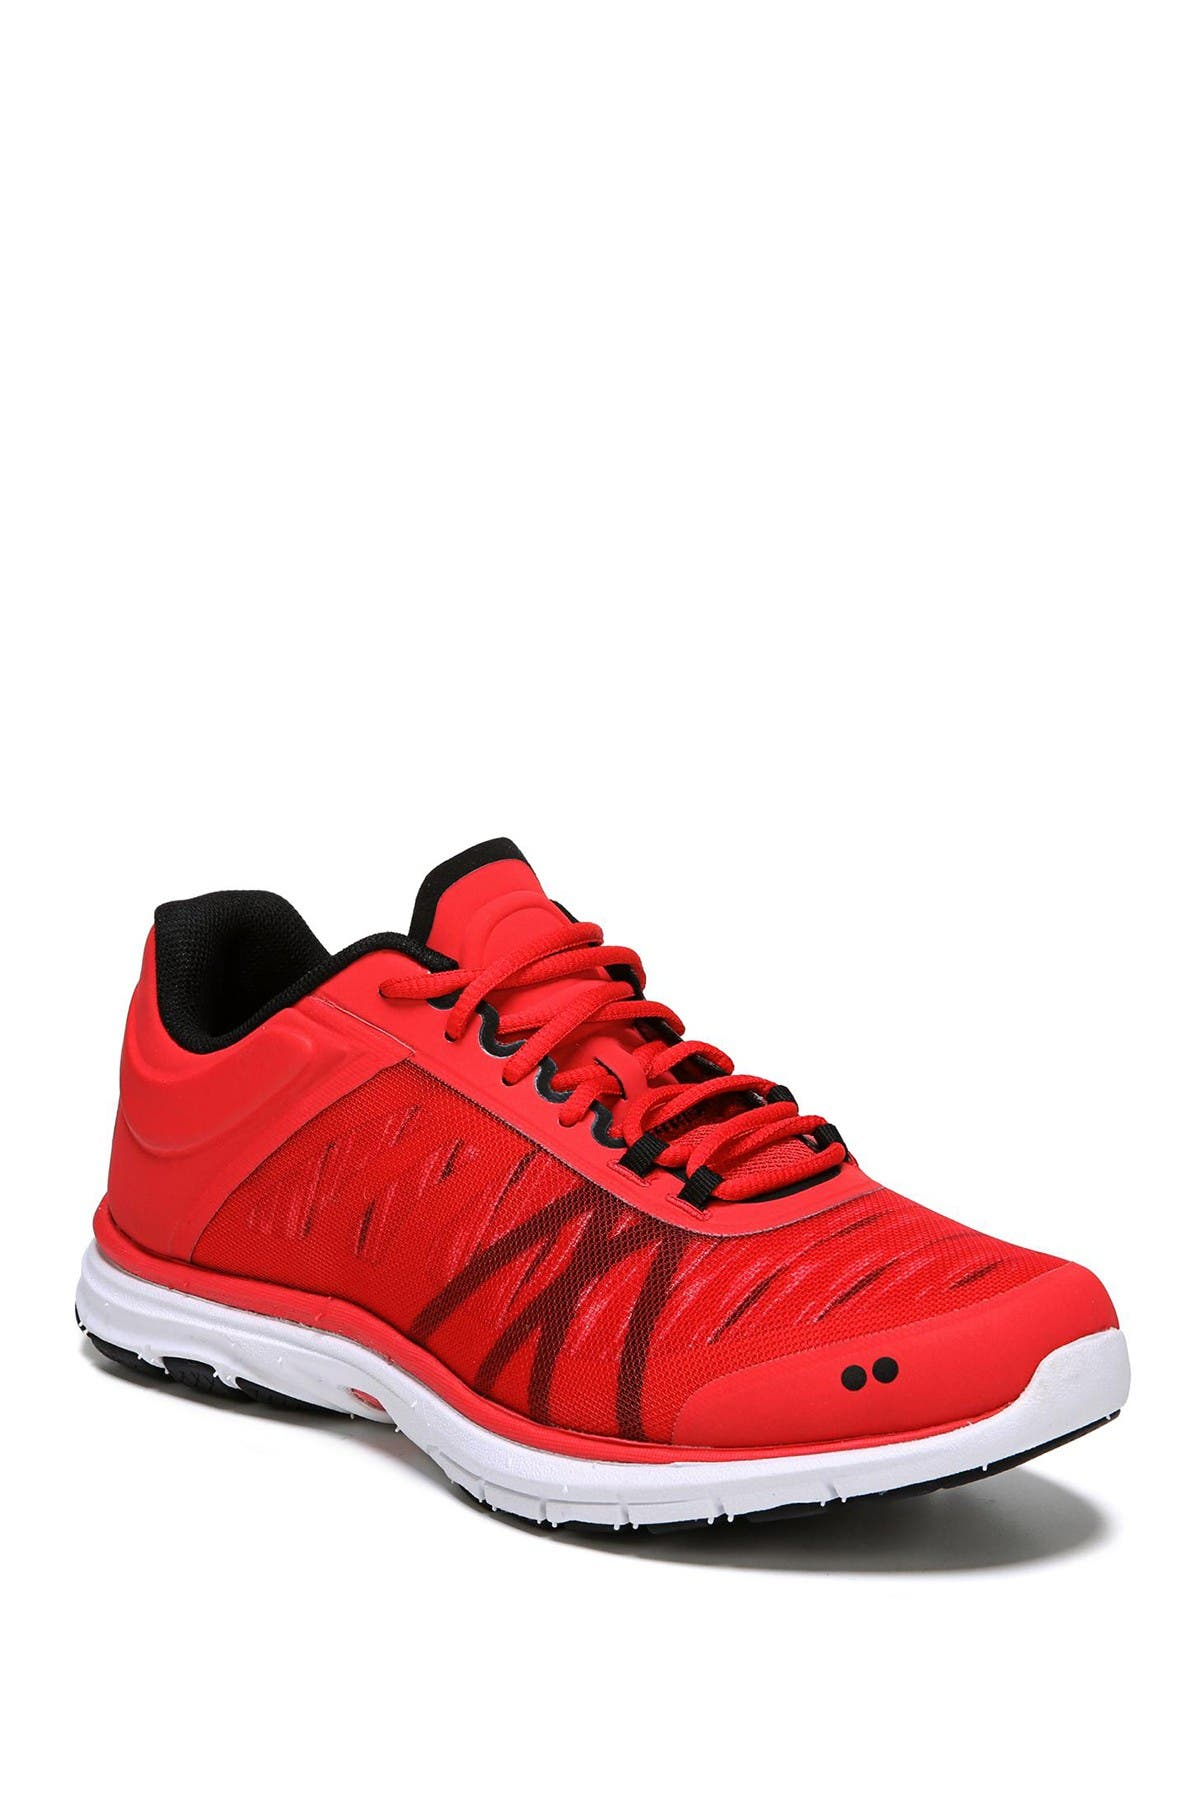 Image of Ryka Dynamic 2.5 Sneaker